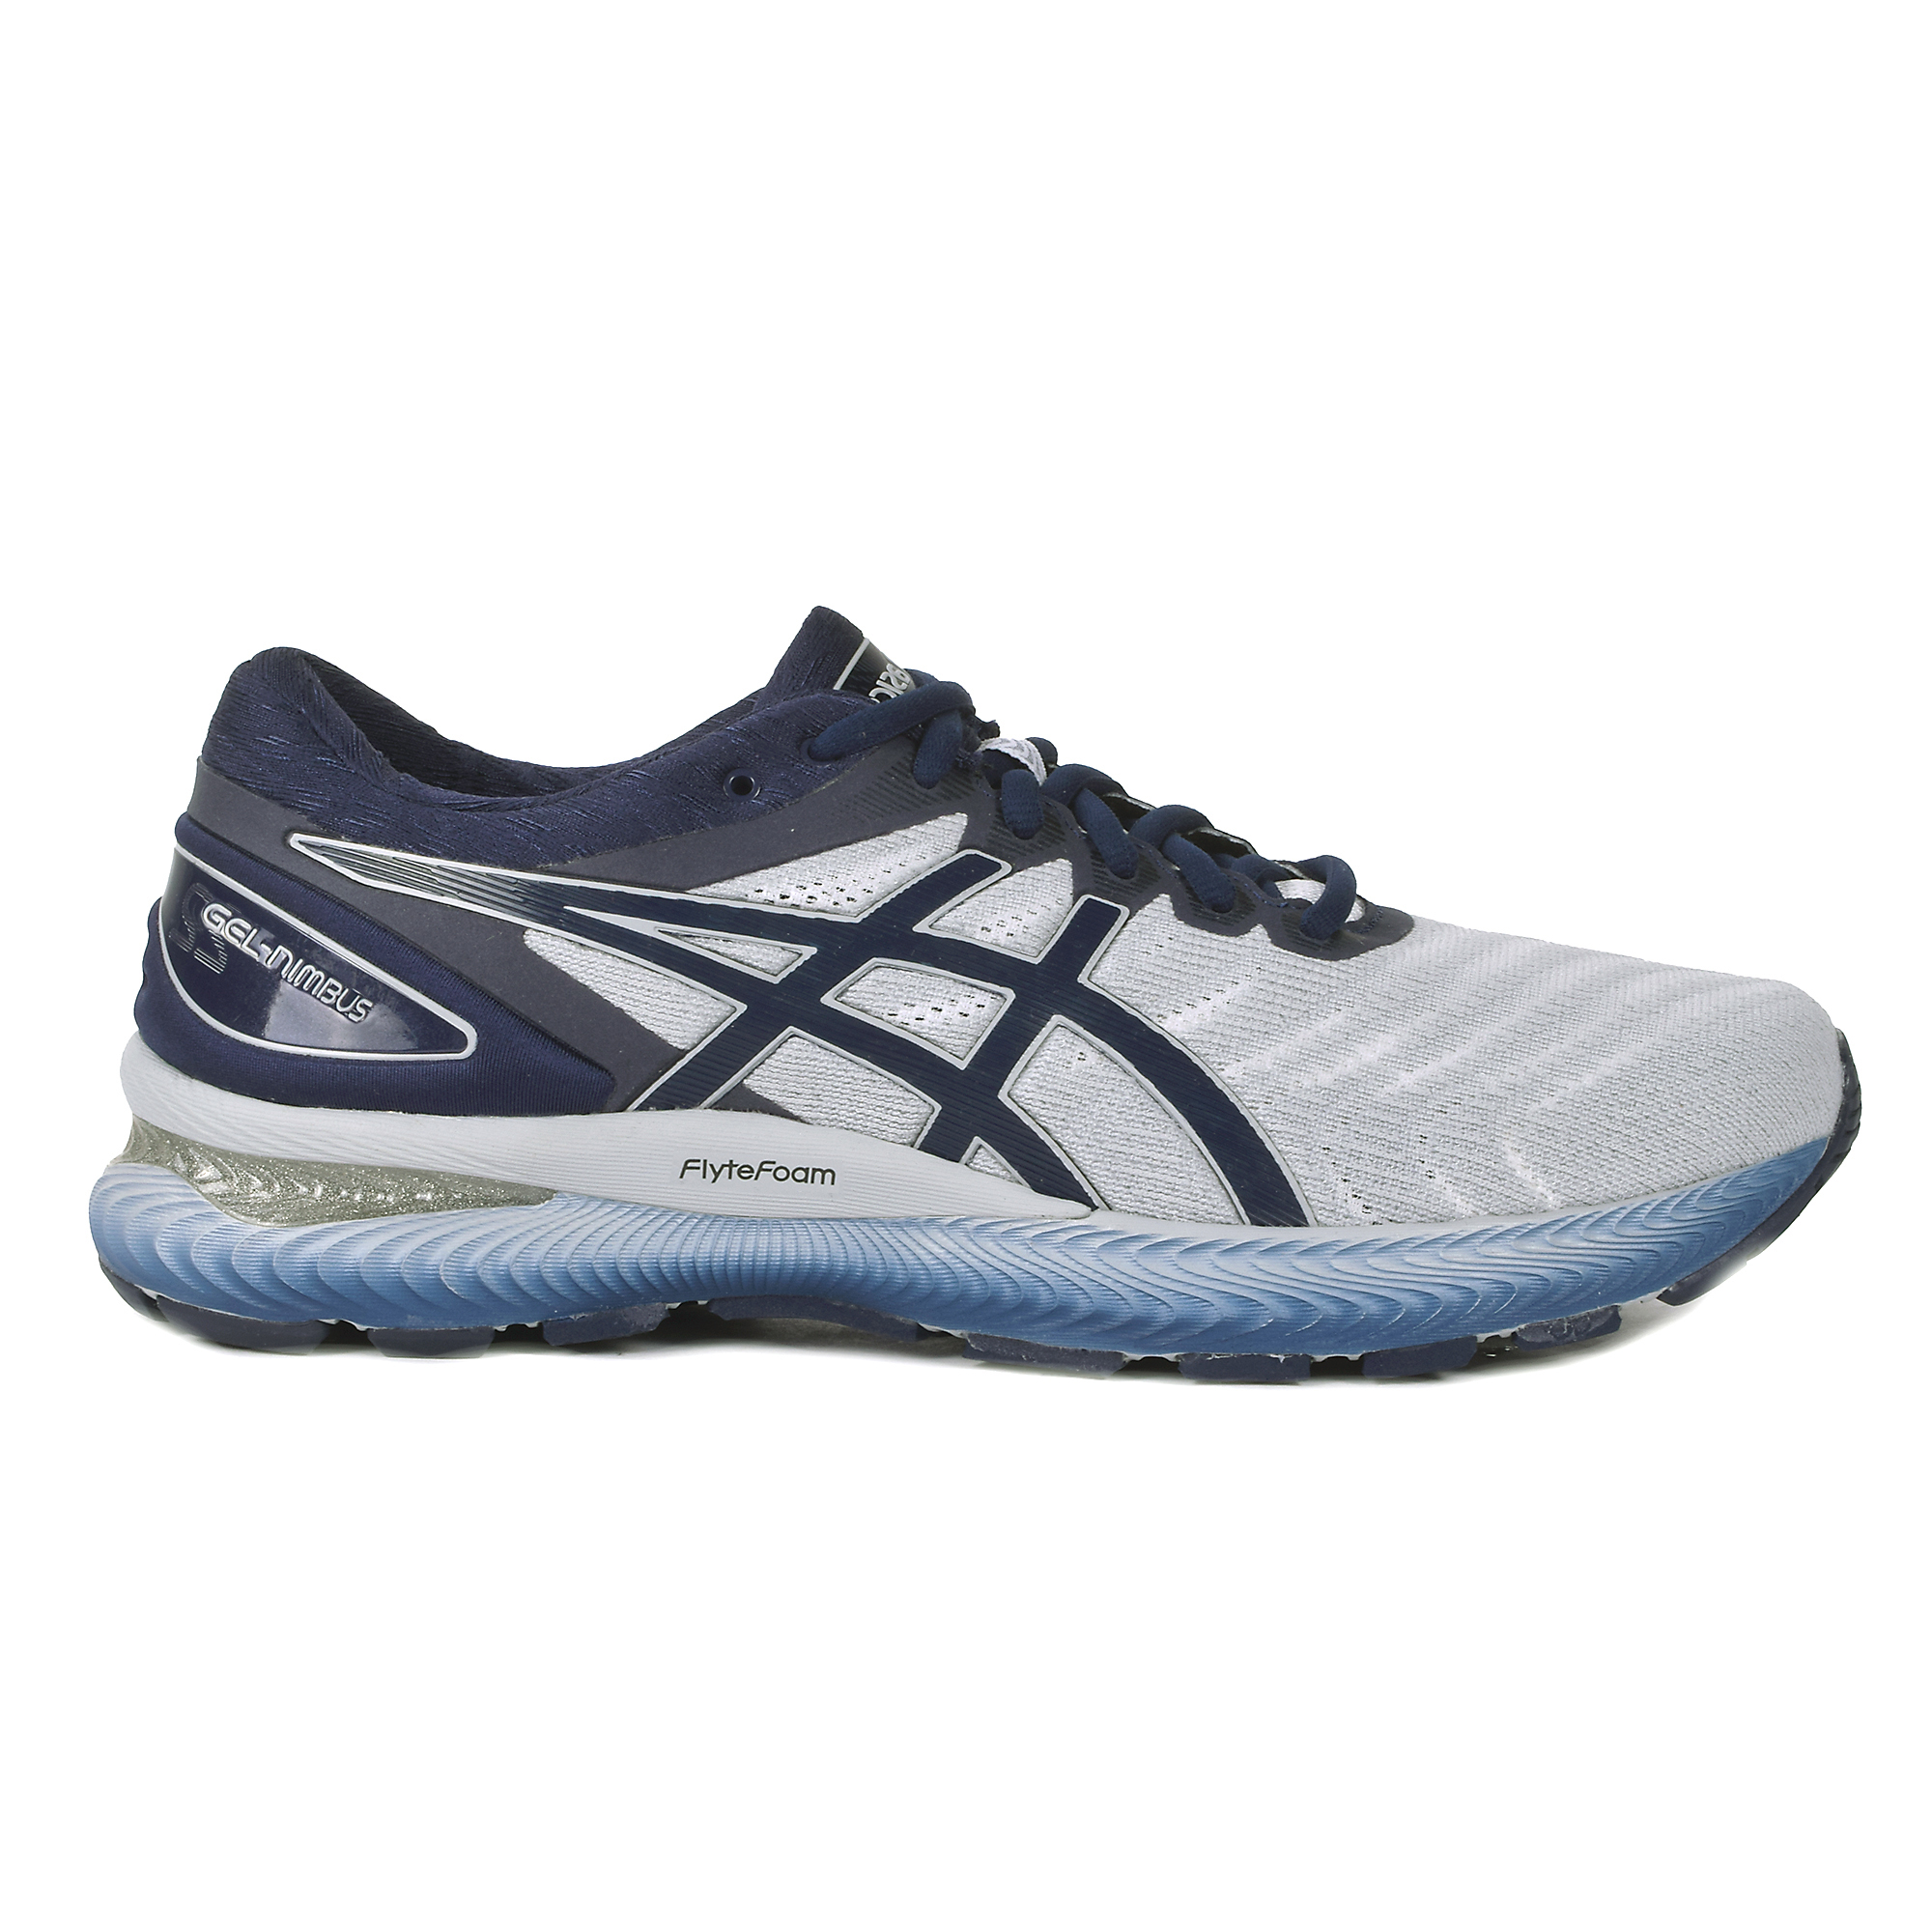 Men's Asics Gel-Nimbus 22 Running Shoe - Color: White/Peacoat (Regular Width) - Size: 7, Grey, large, image 1